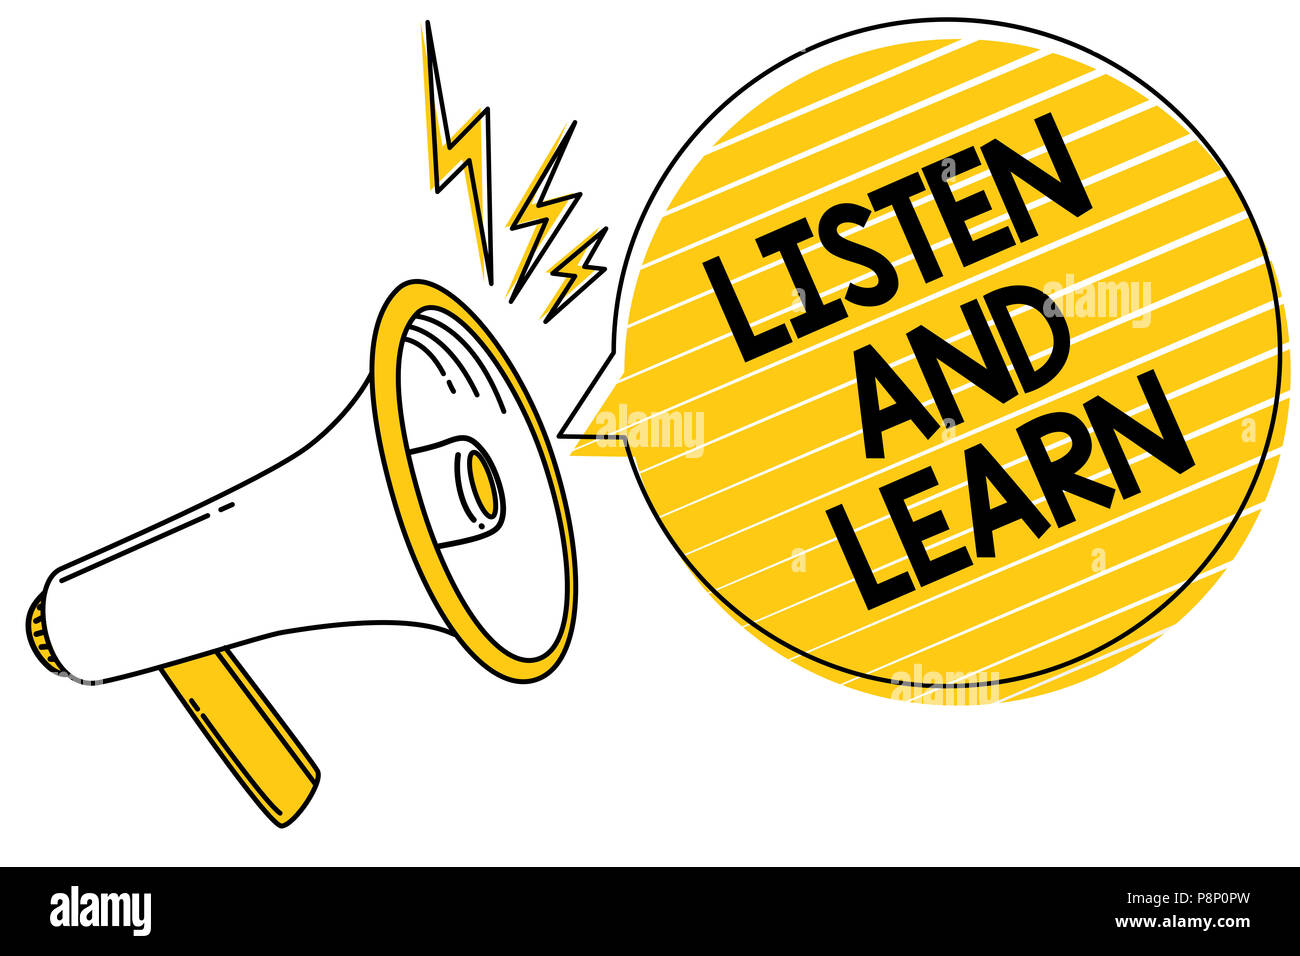 Handwriting Text Listen And Learn Concept Meaning Pay Attention To